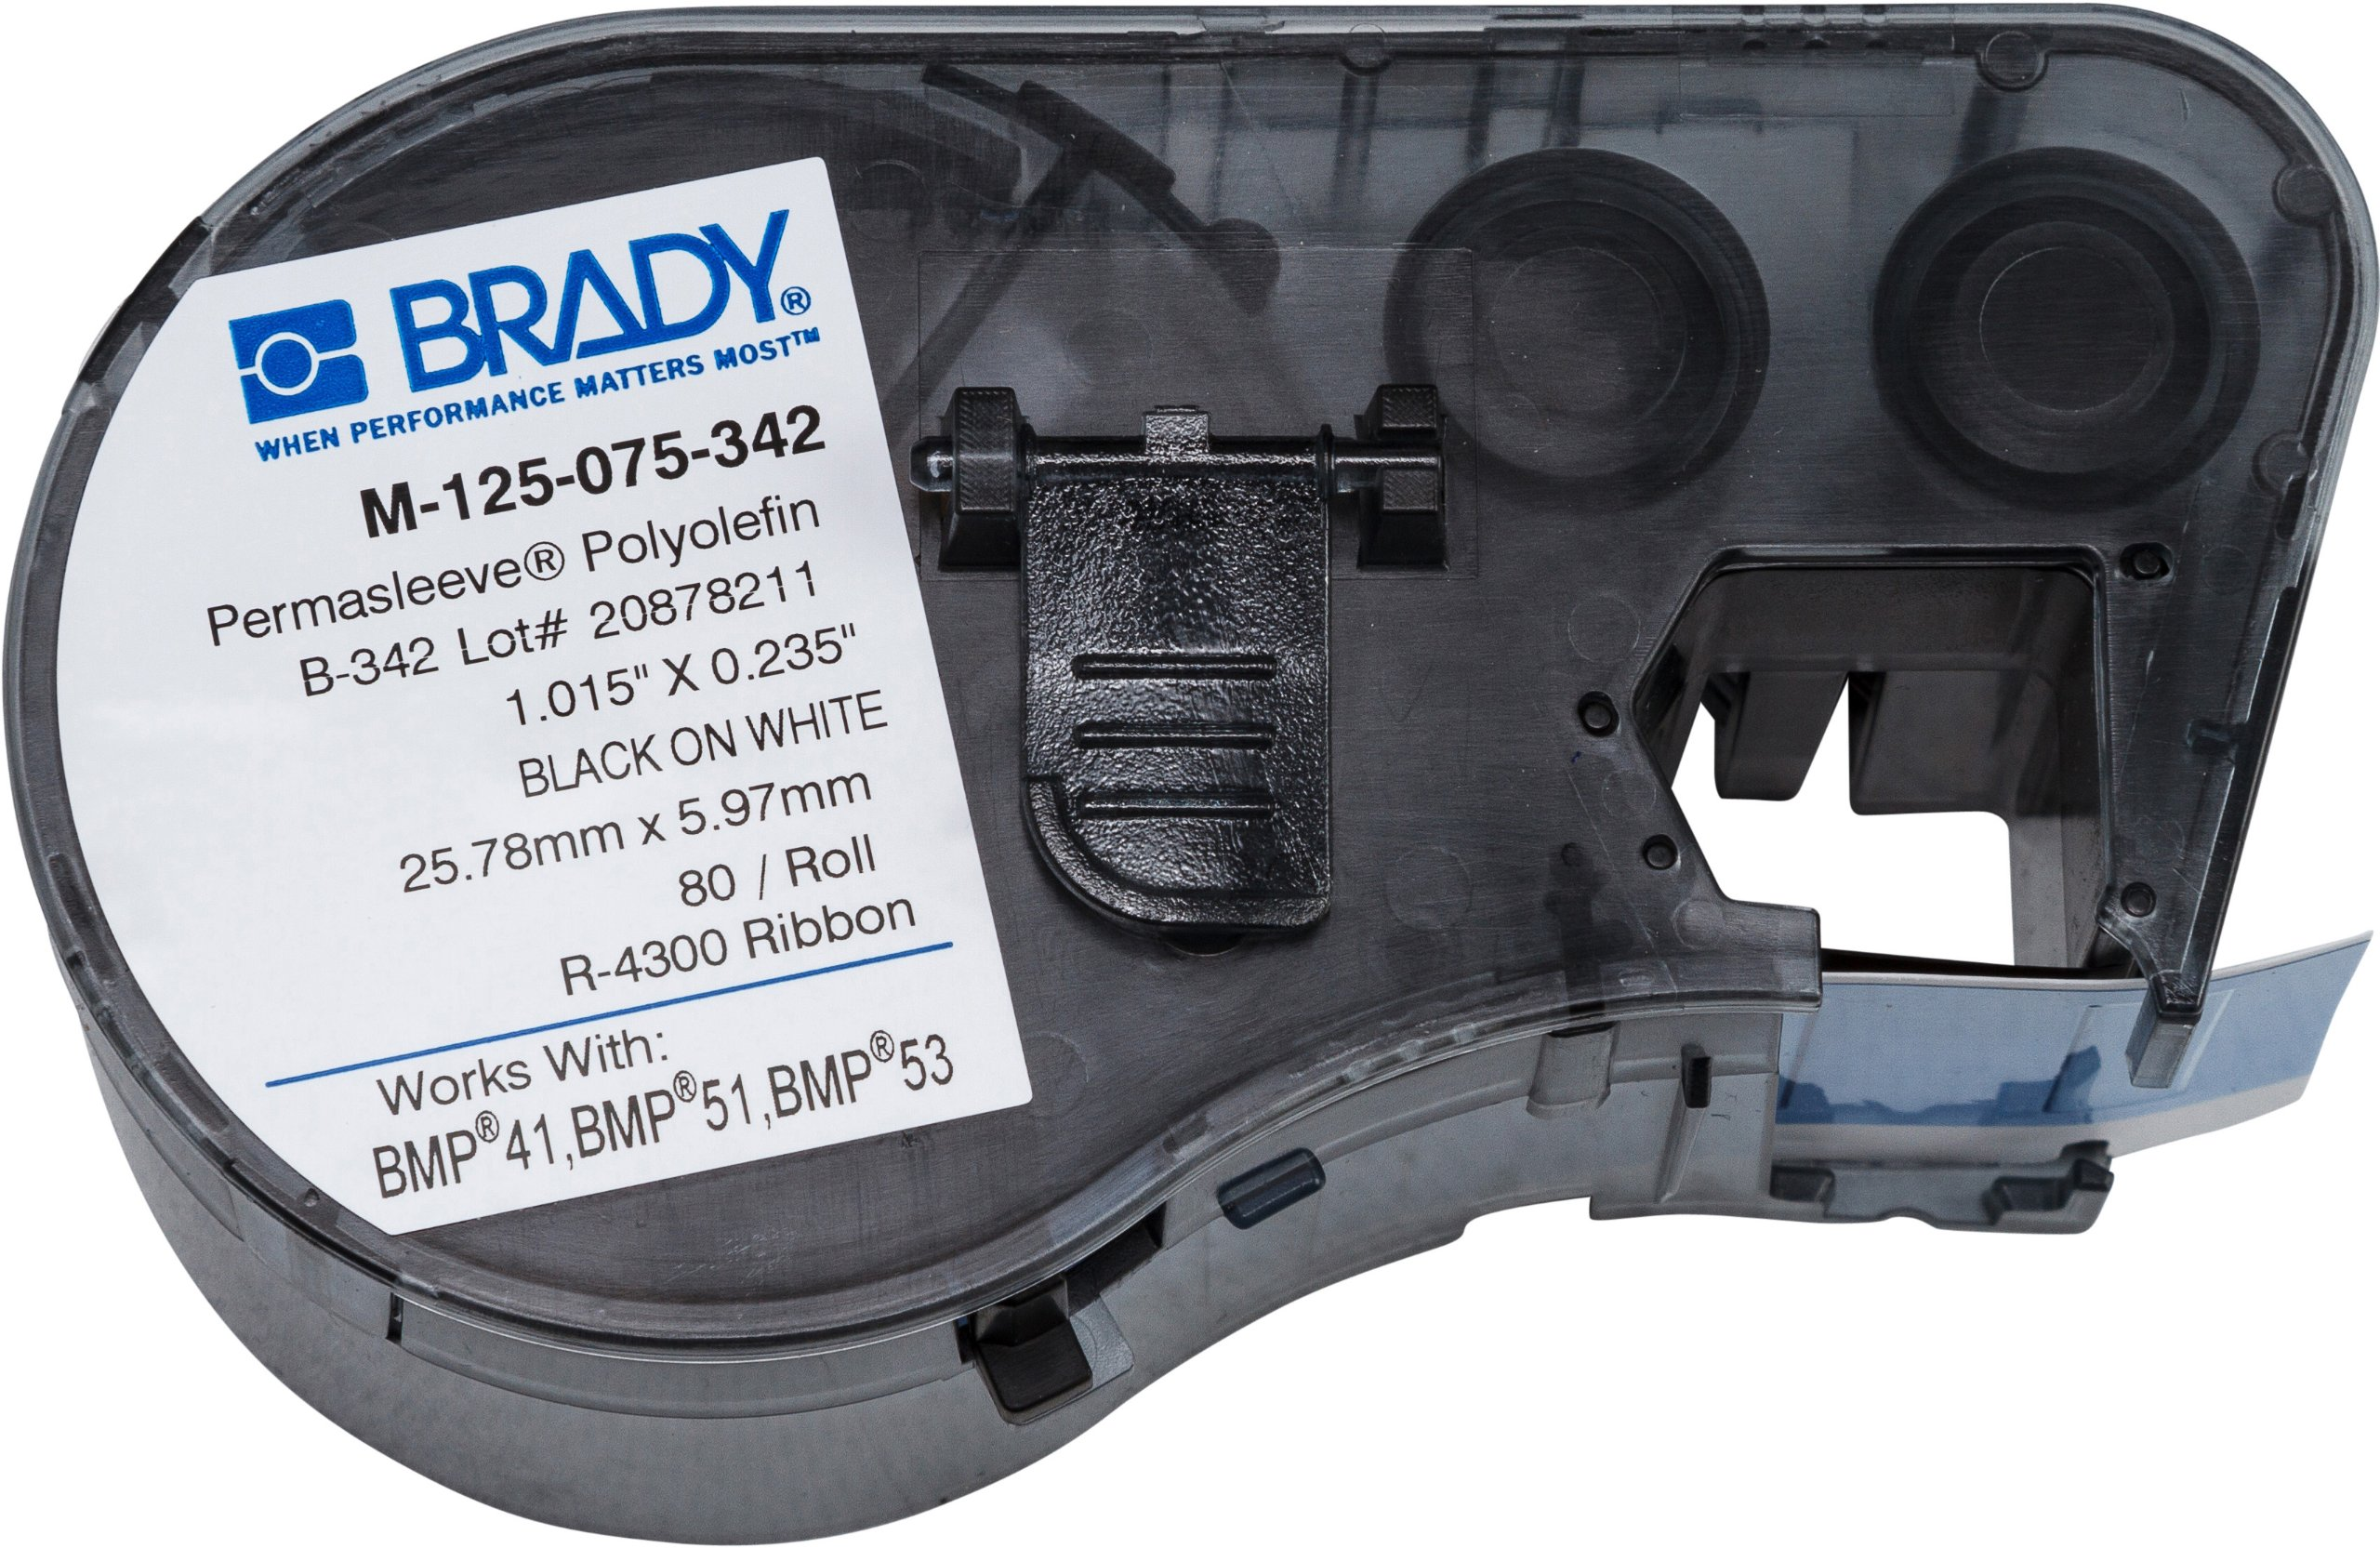 Brady M-125-075-342 Labels for BMP53/BMP51 Printers